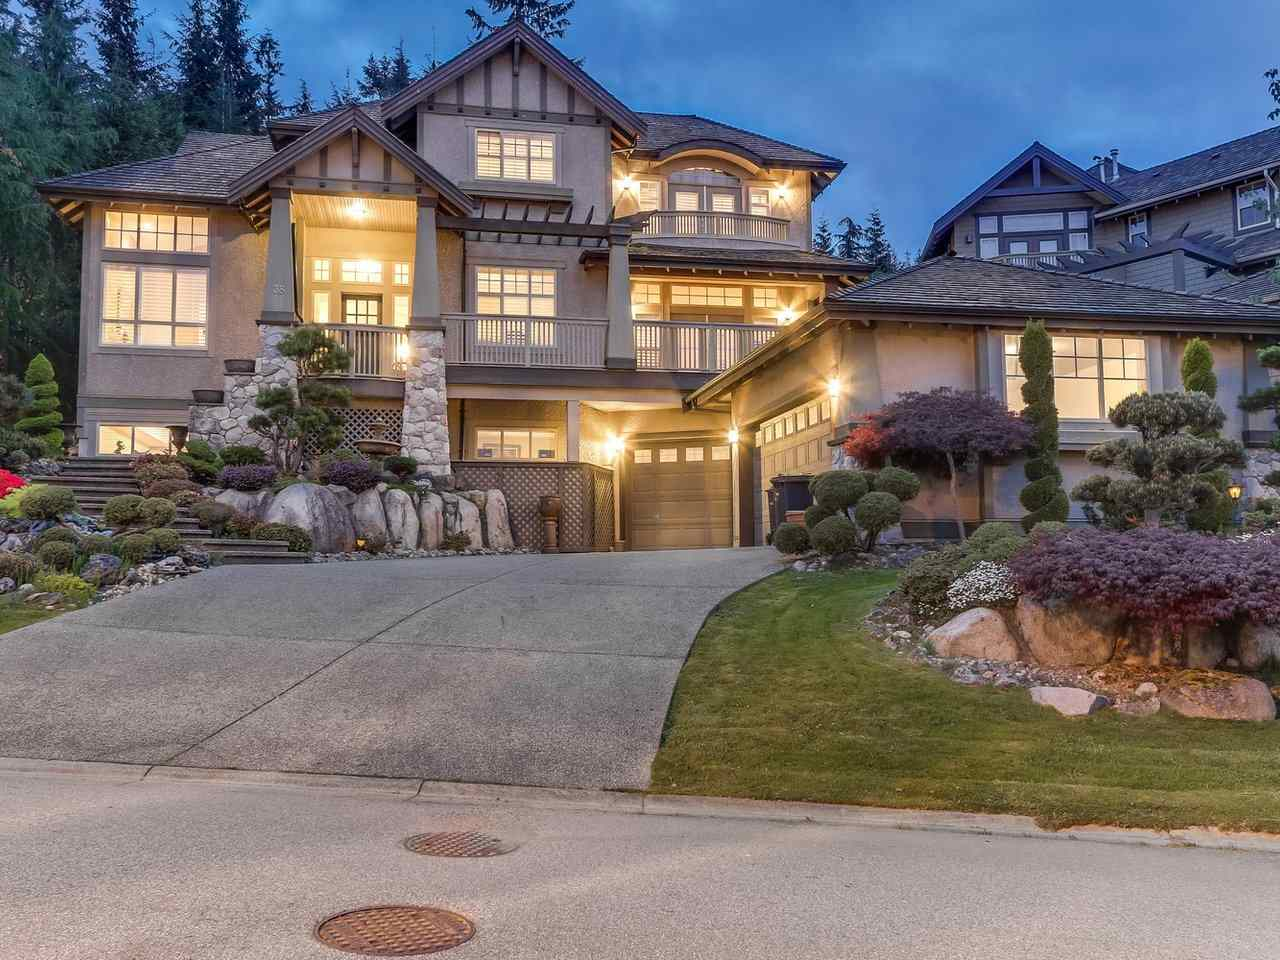 38 KINGSWOOD COURT, Port Moody